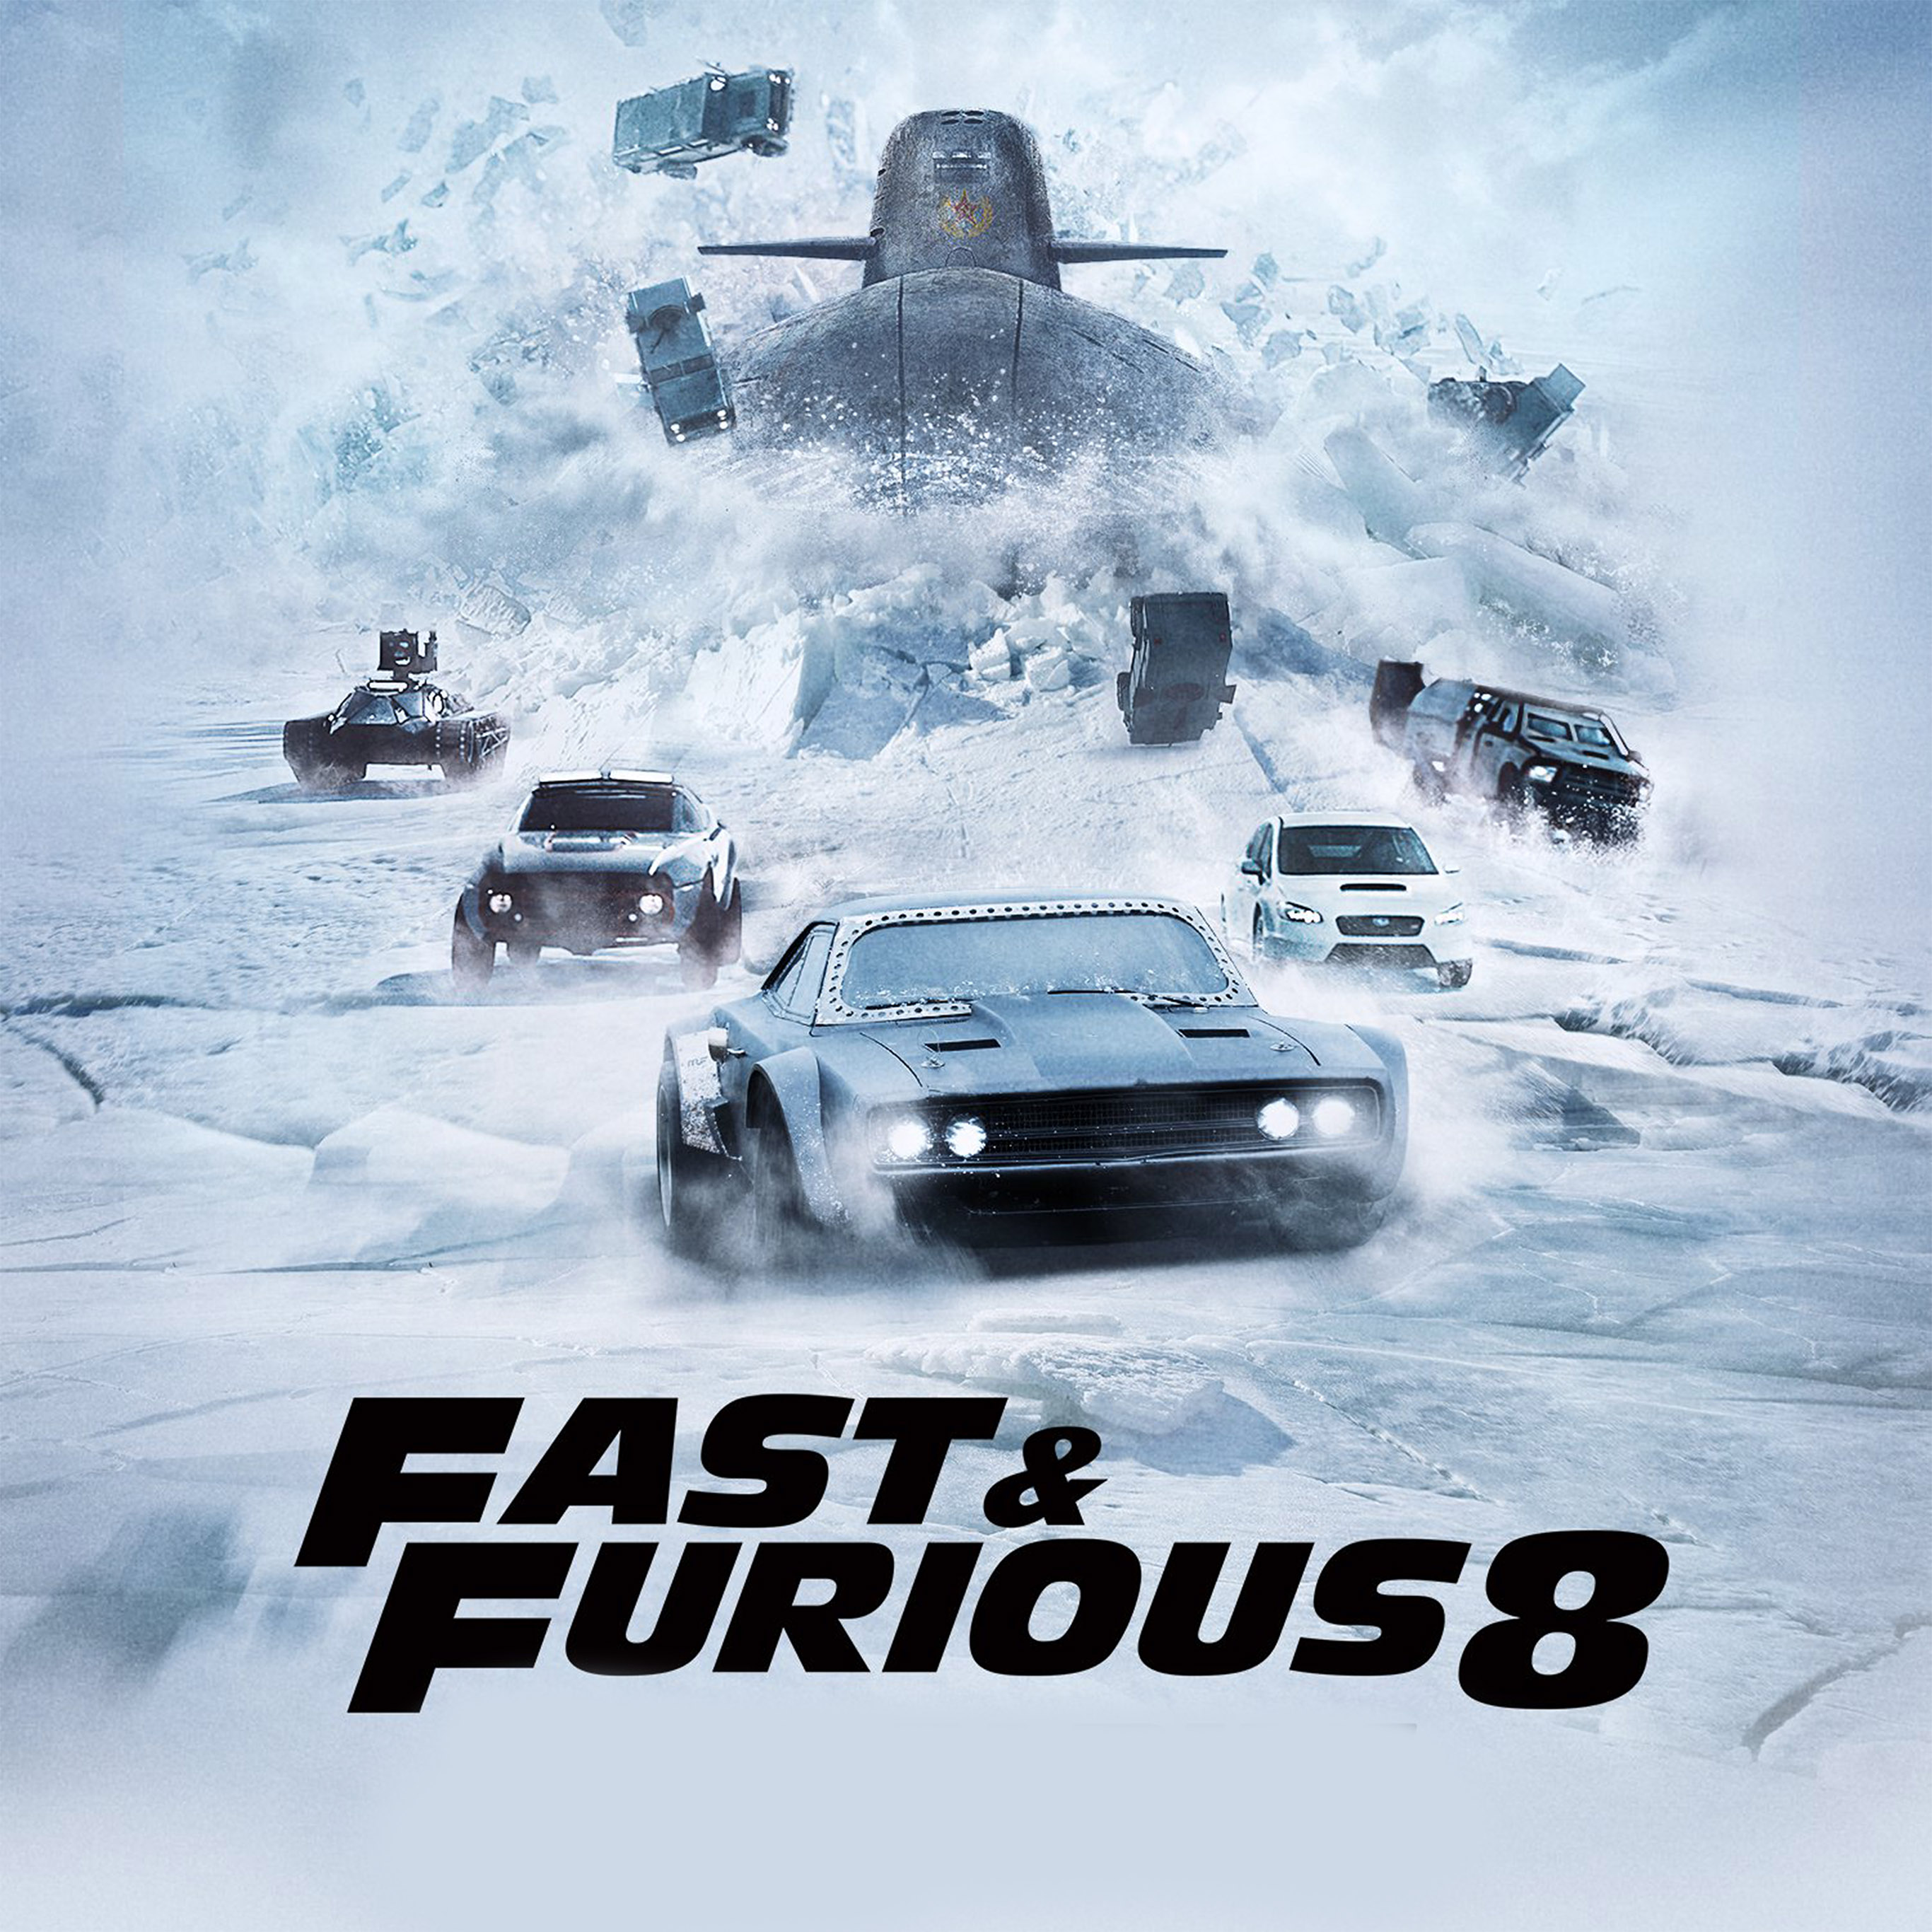 Fast And Furious 6 Wallpaper Hd Images Free Download